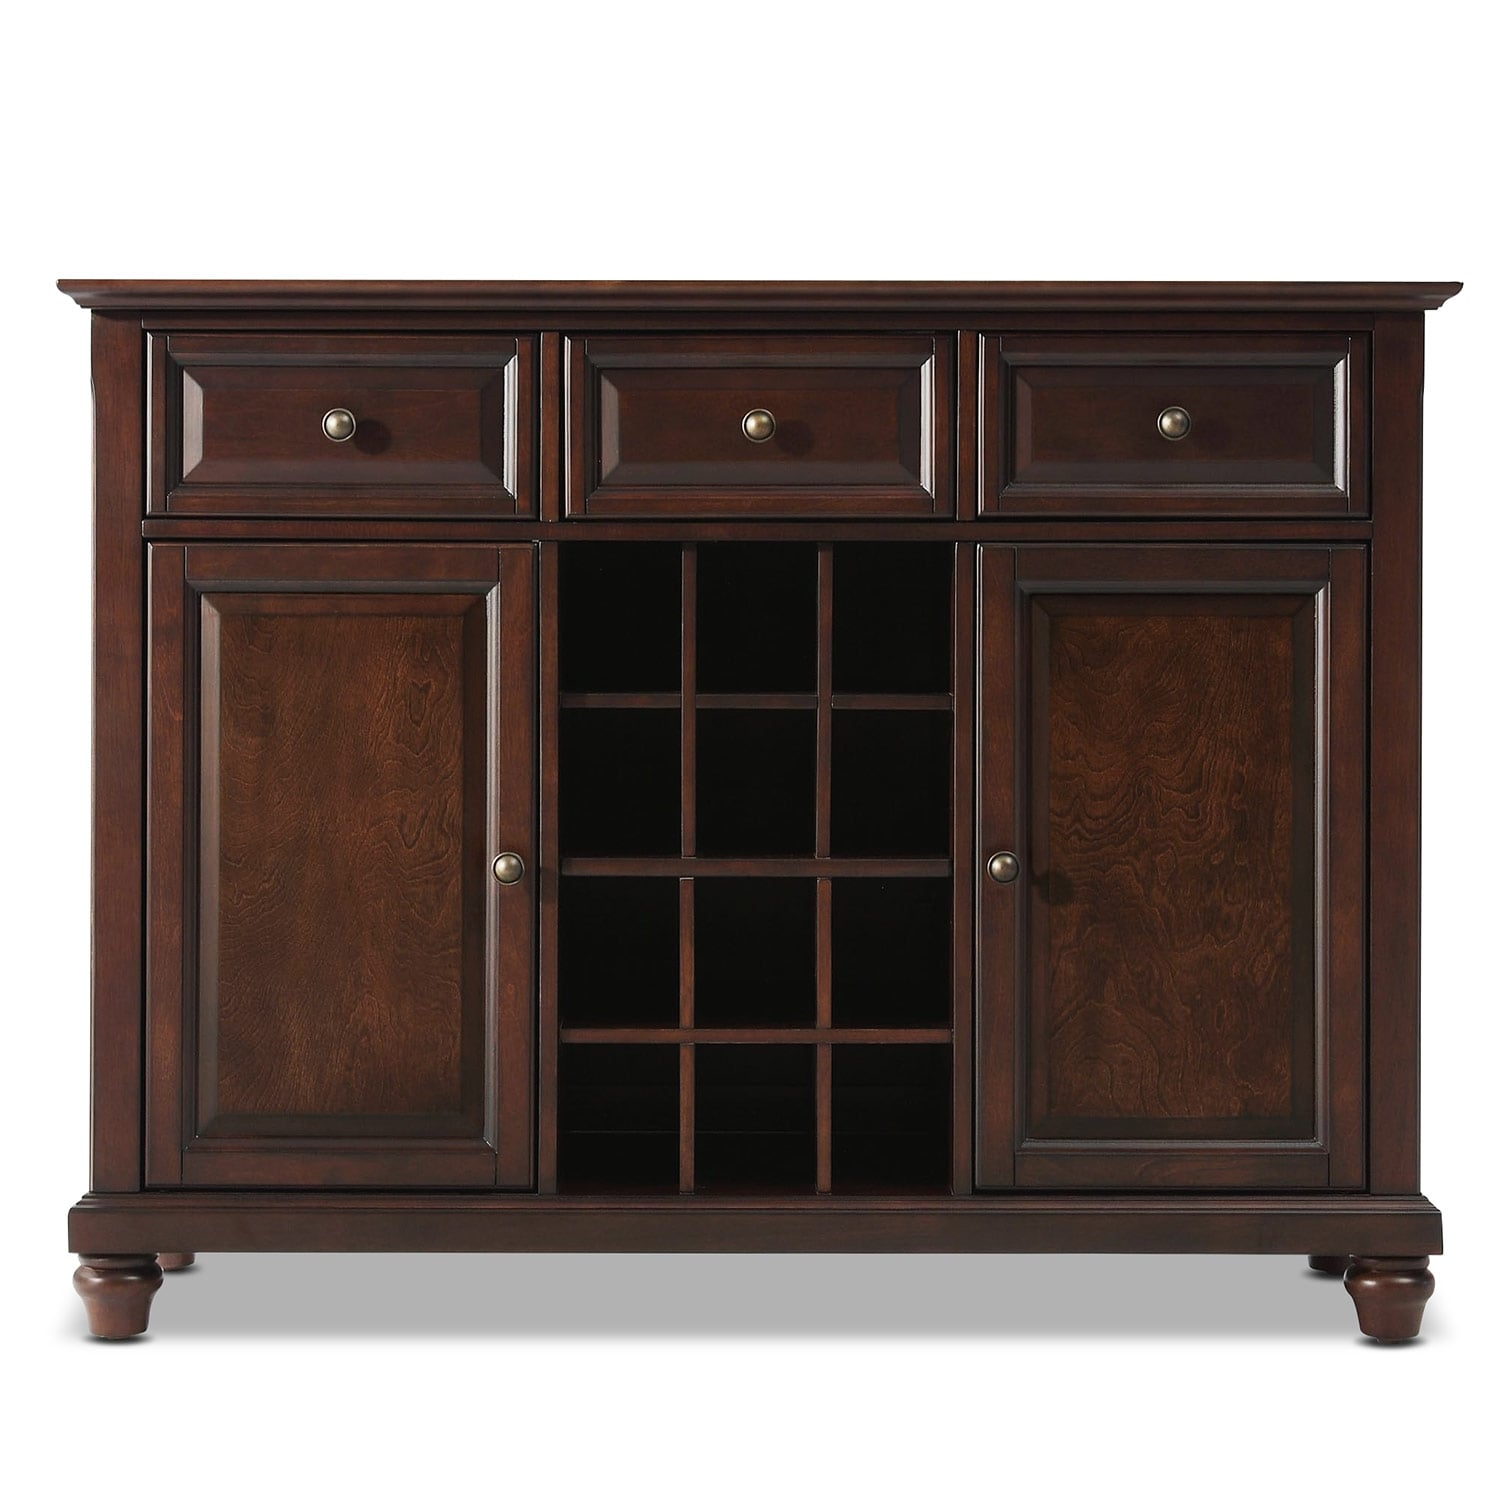 Dining Room Furniture - Viva Sideboard - Mahogany